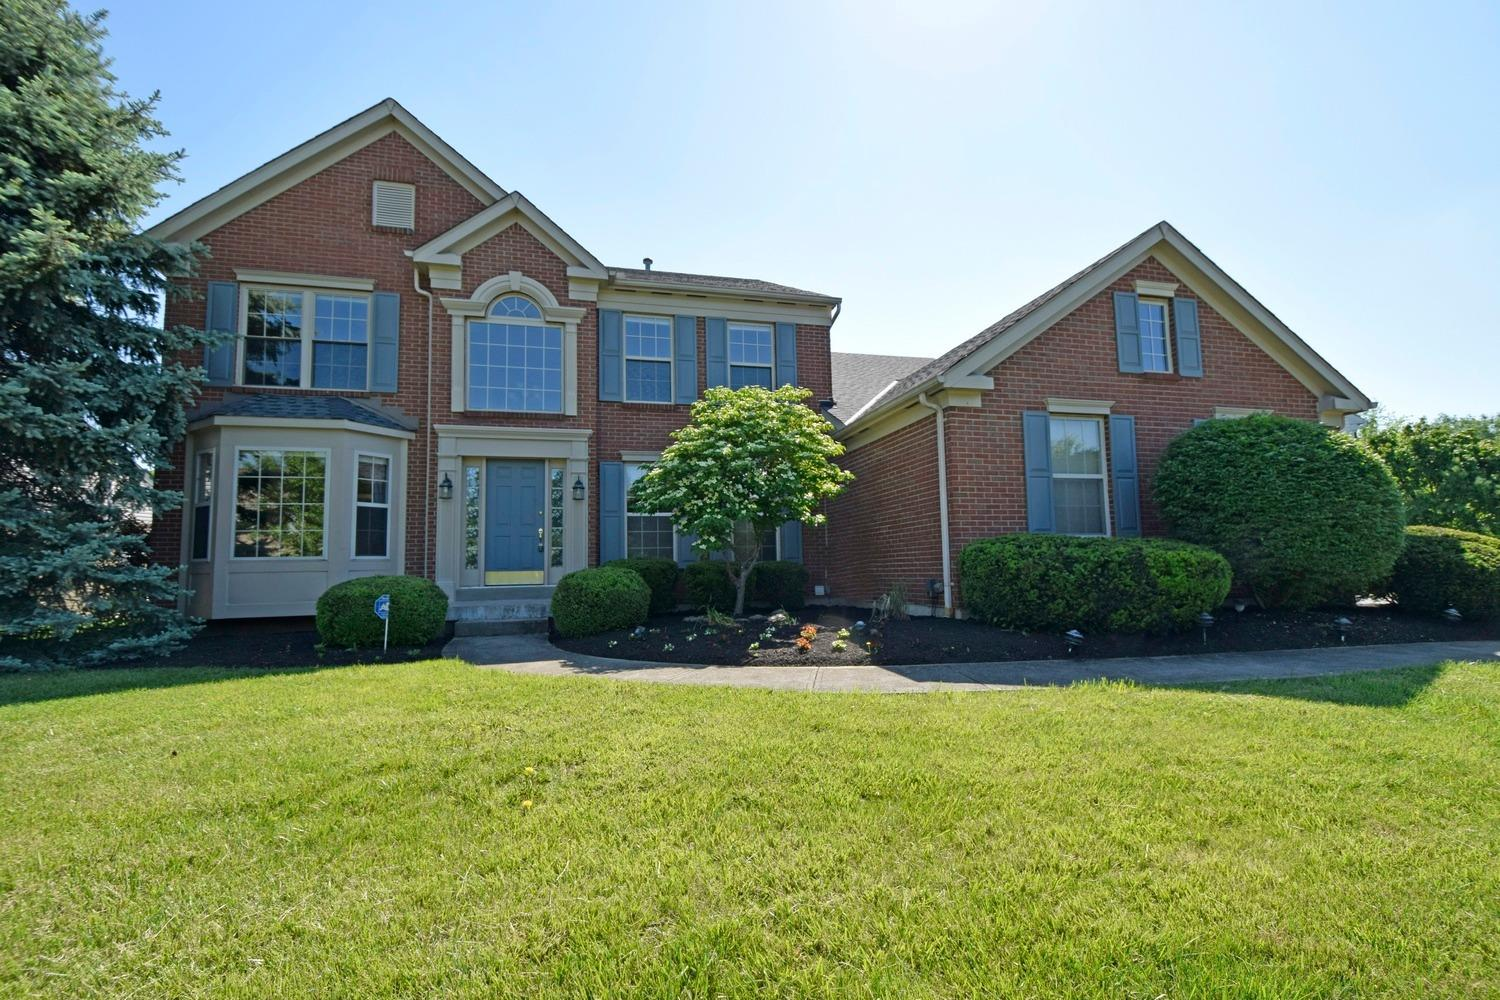 7858 Yellowwood Drive, Mason, OH 45040